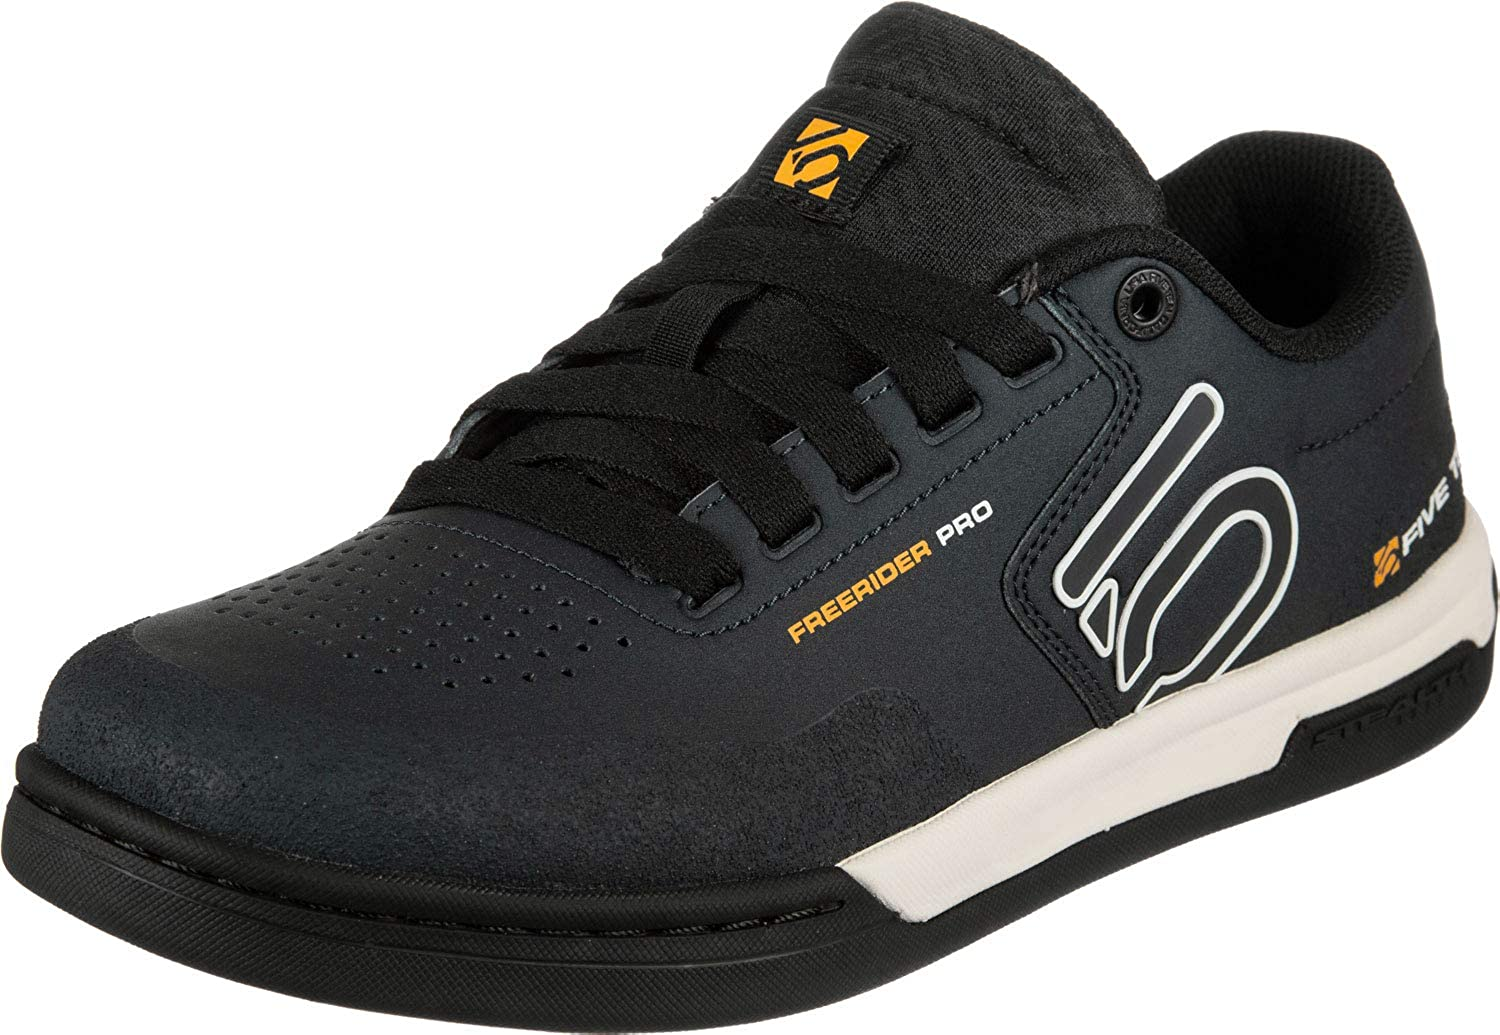 adidas Five Ten Freerider Pro Chaussures Homme, ntnavyclowhicogold